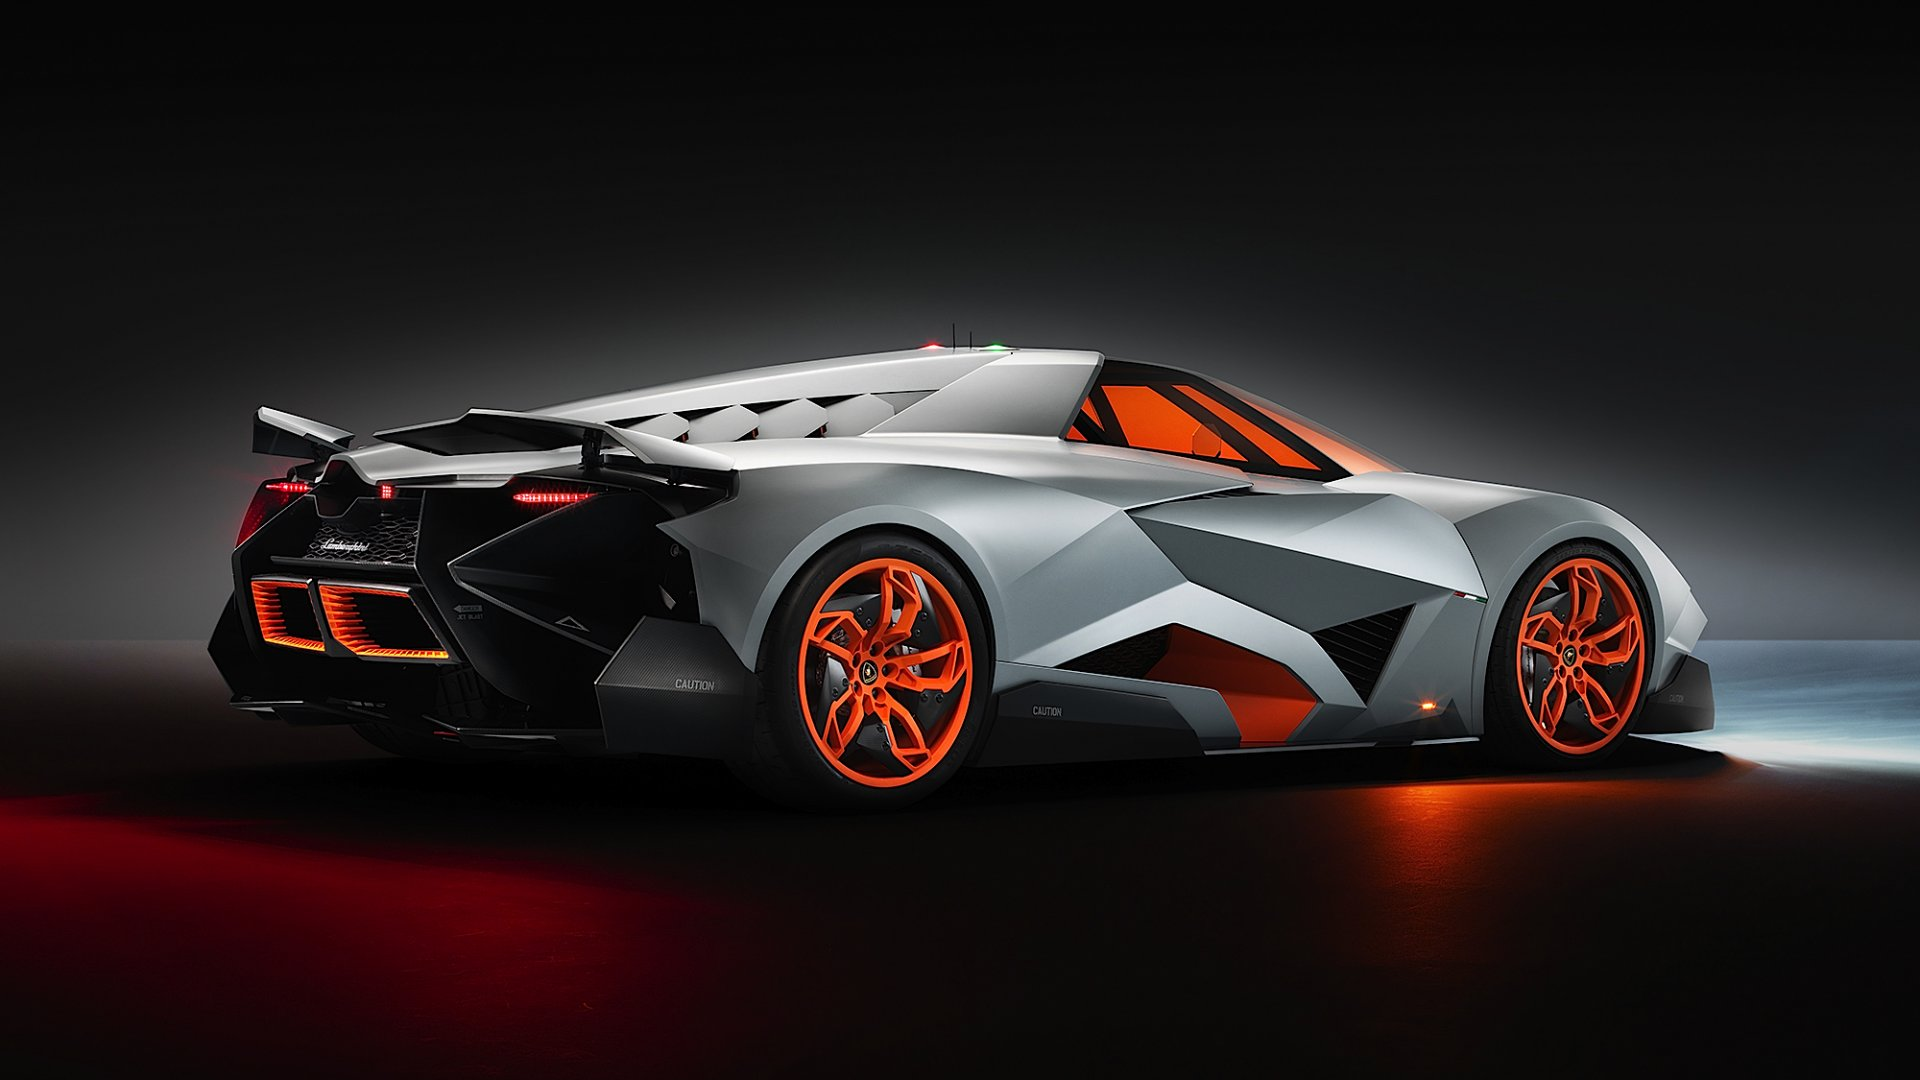 10 Lamborghini Supercars Wallpapers High Resolution 1920x1080